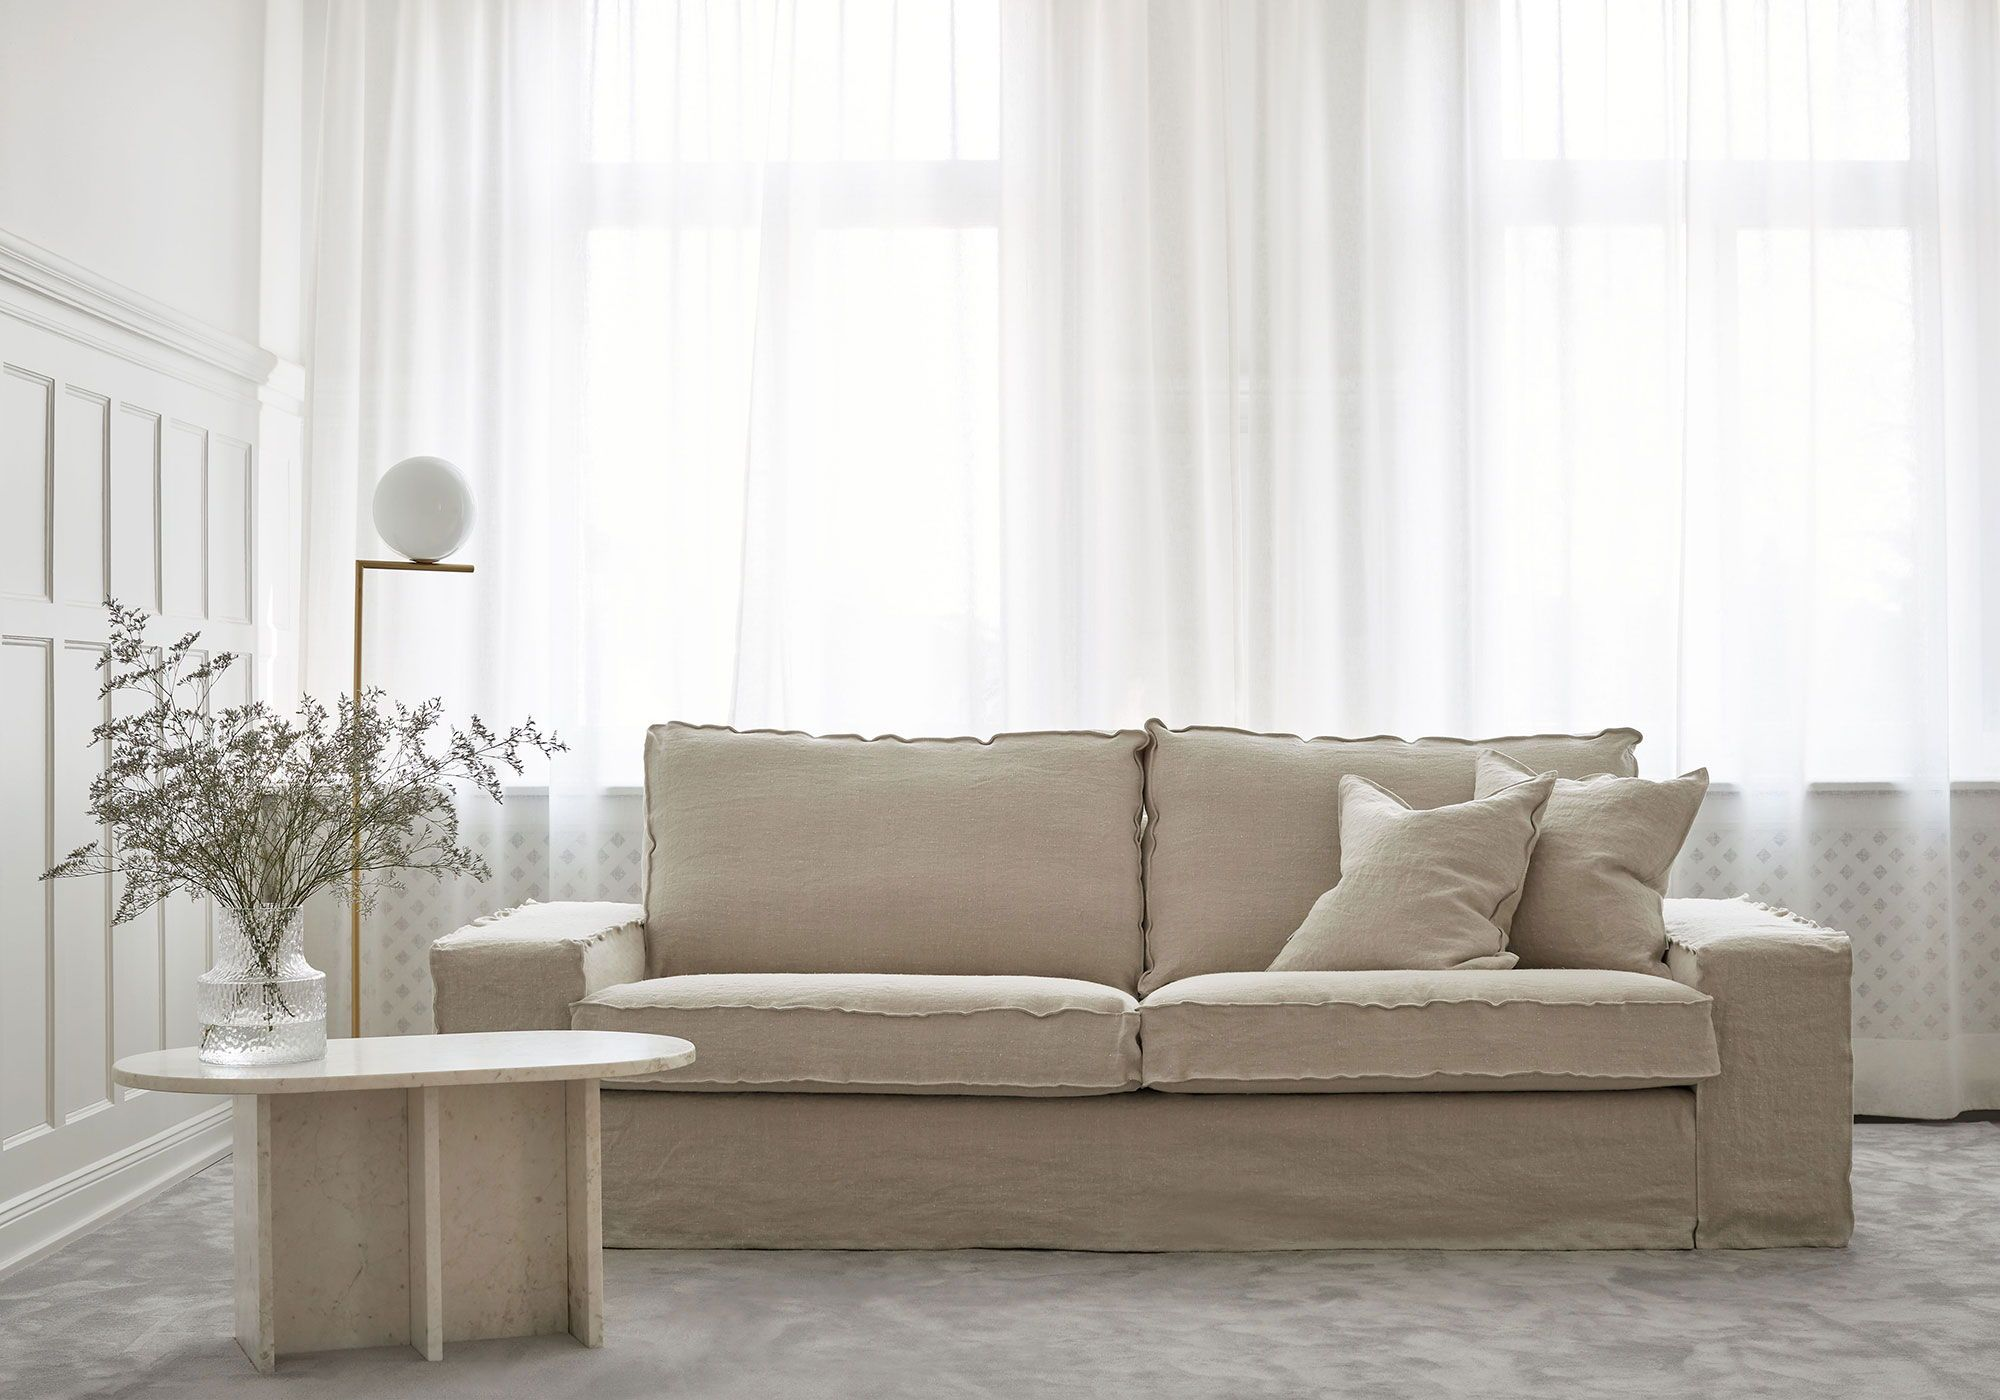 Sophisticated Minimalism The Ikea Kivik Sofa Is Characterised By Its Boxy Statement Shape Here The Look Of It Is Completely T Ikea Kivik Kivik Sofa Ikea Sofa